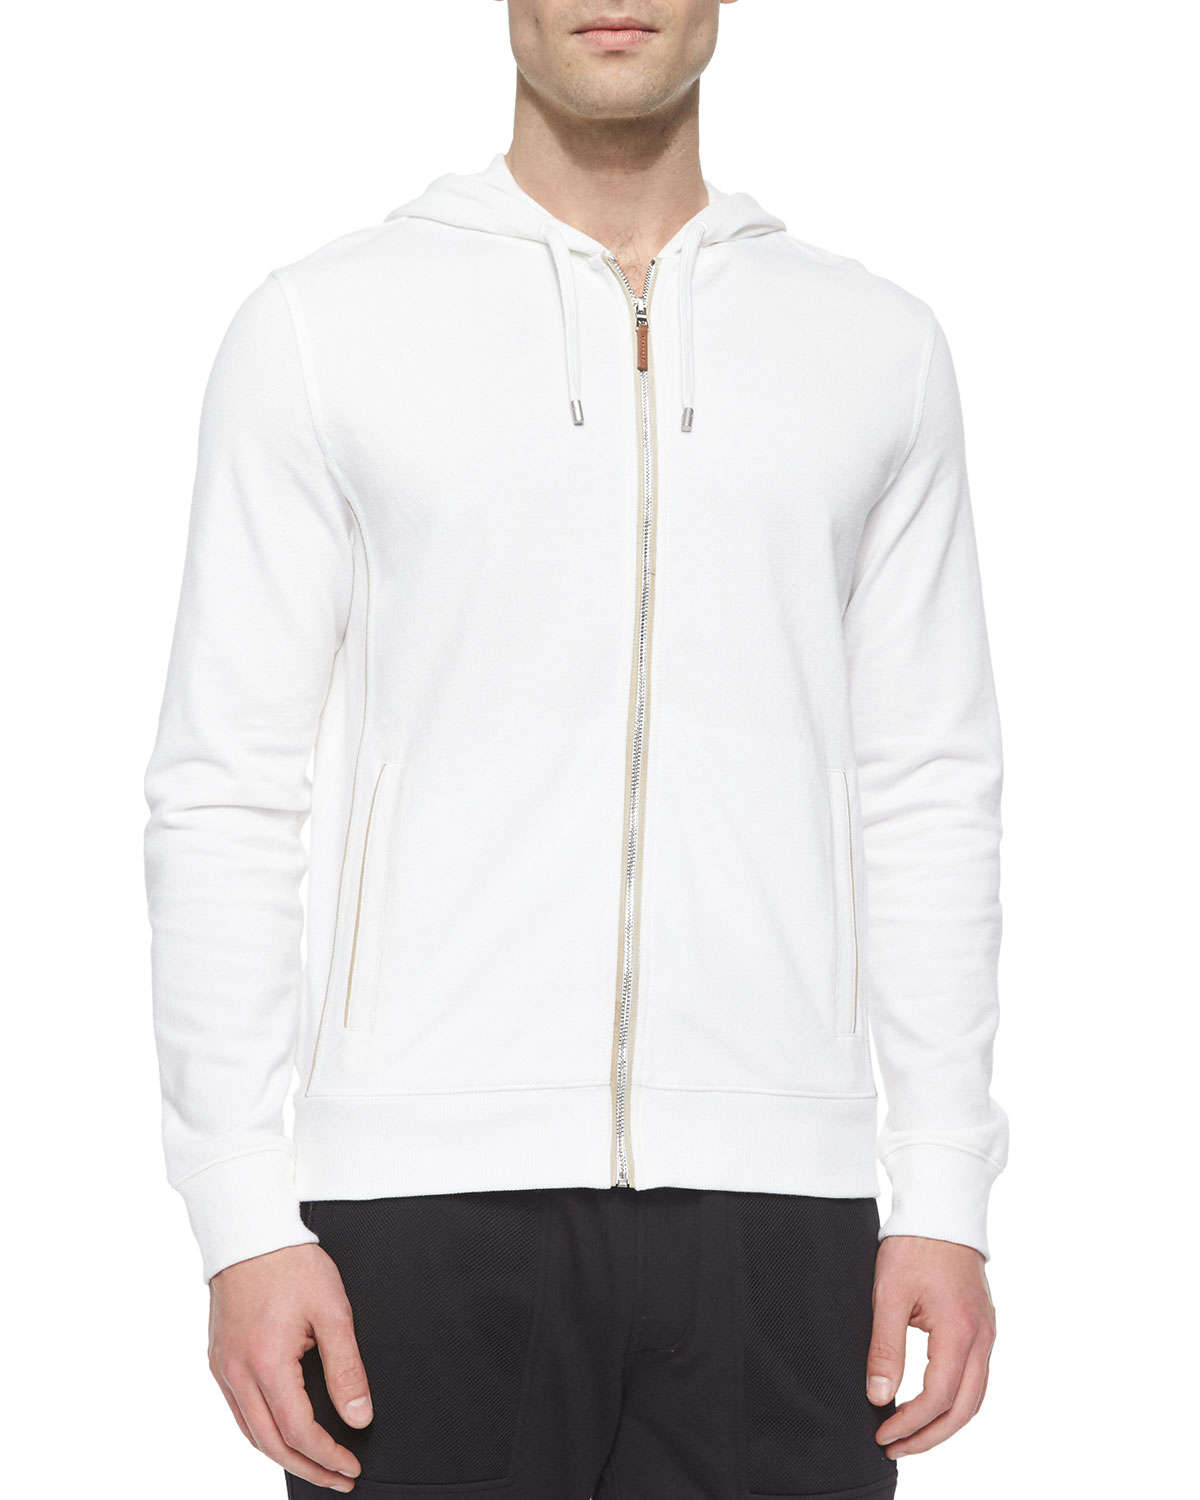 Michael kors Waffle-knit Zip-up Hoodie Jacket in White for Men | Lyst